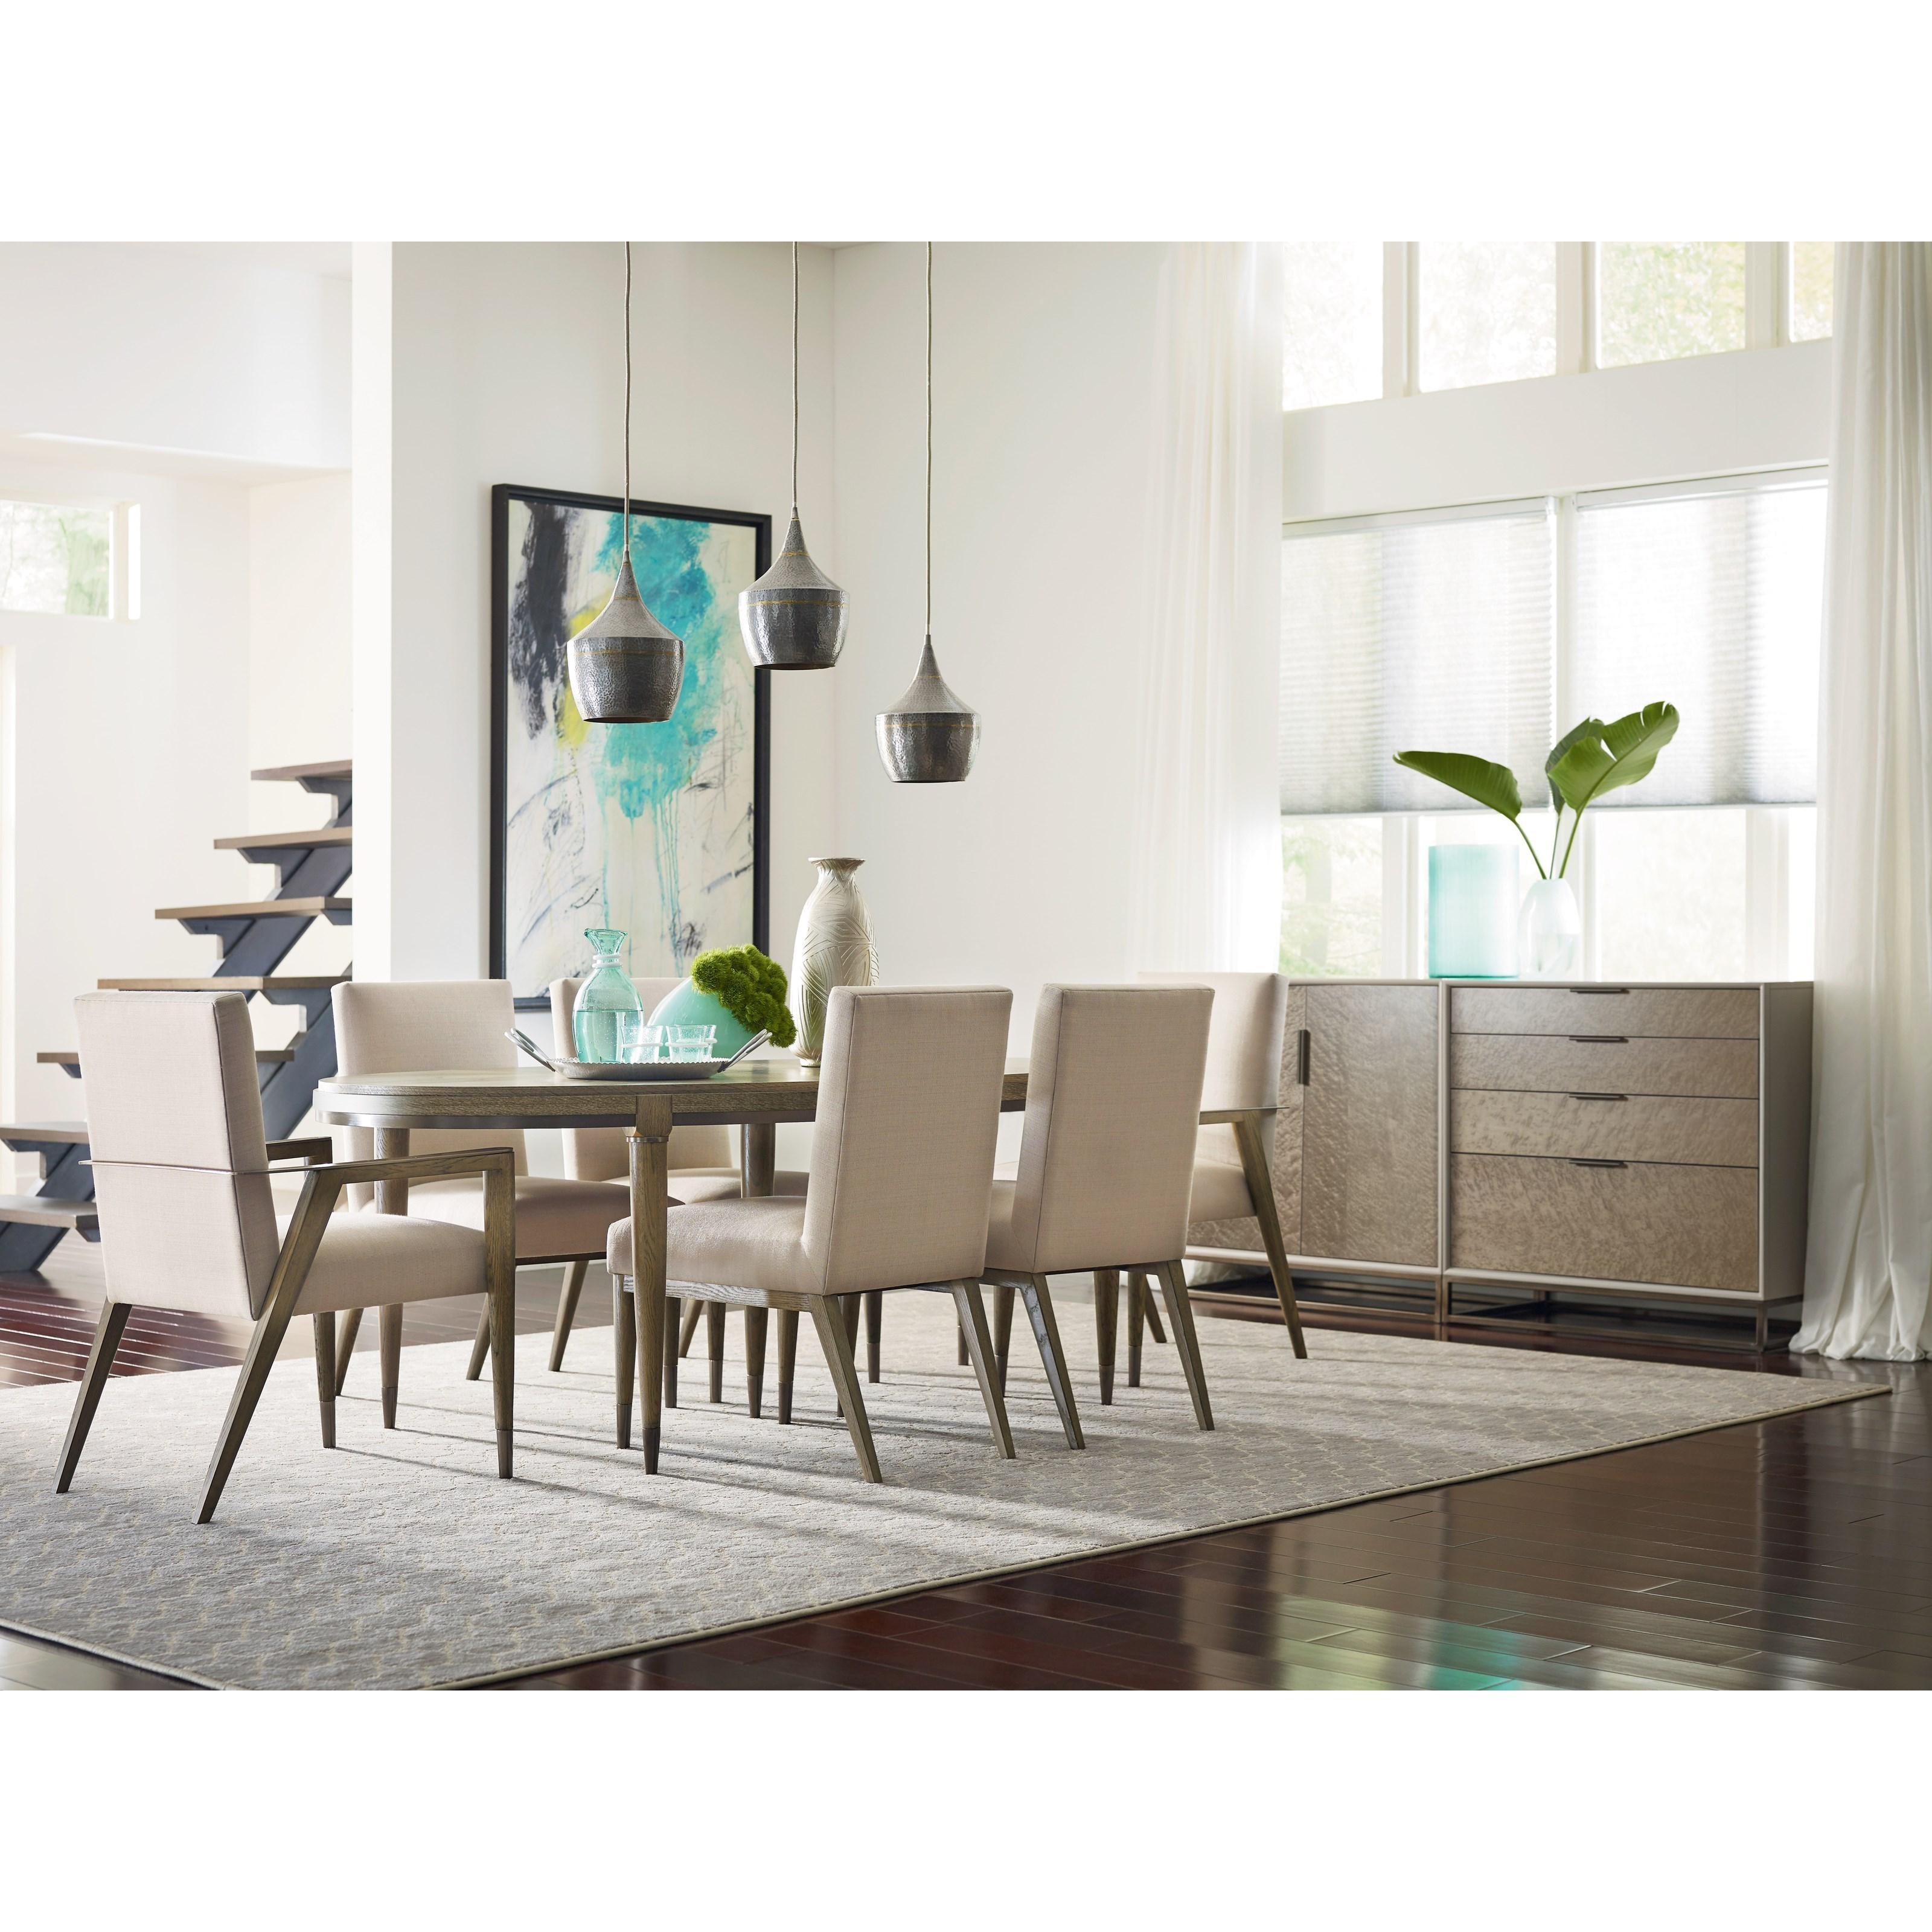 American Drew Ad Modern Classics Formal Dining Room Group - Item Number: 603 Dining Room Group 1